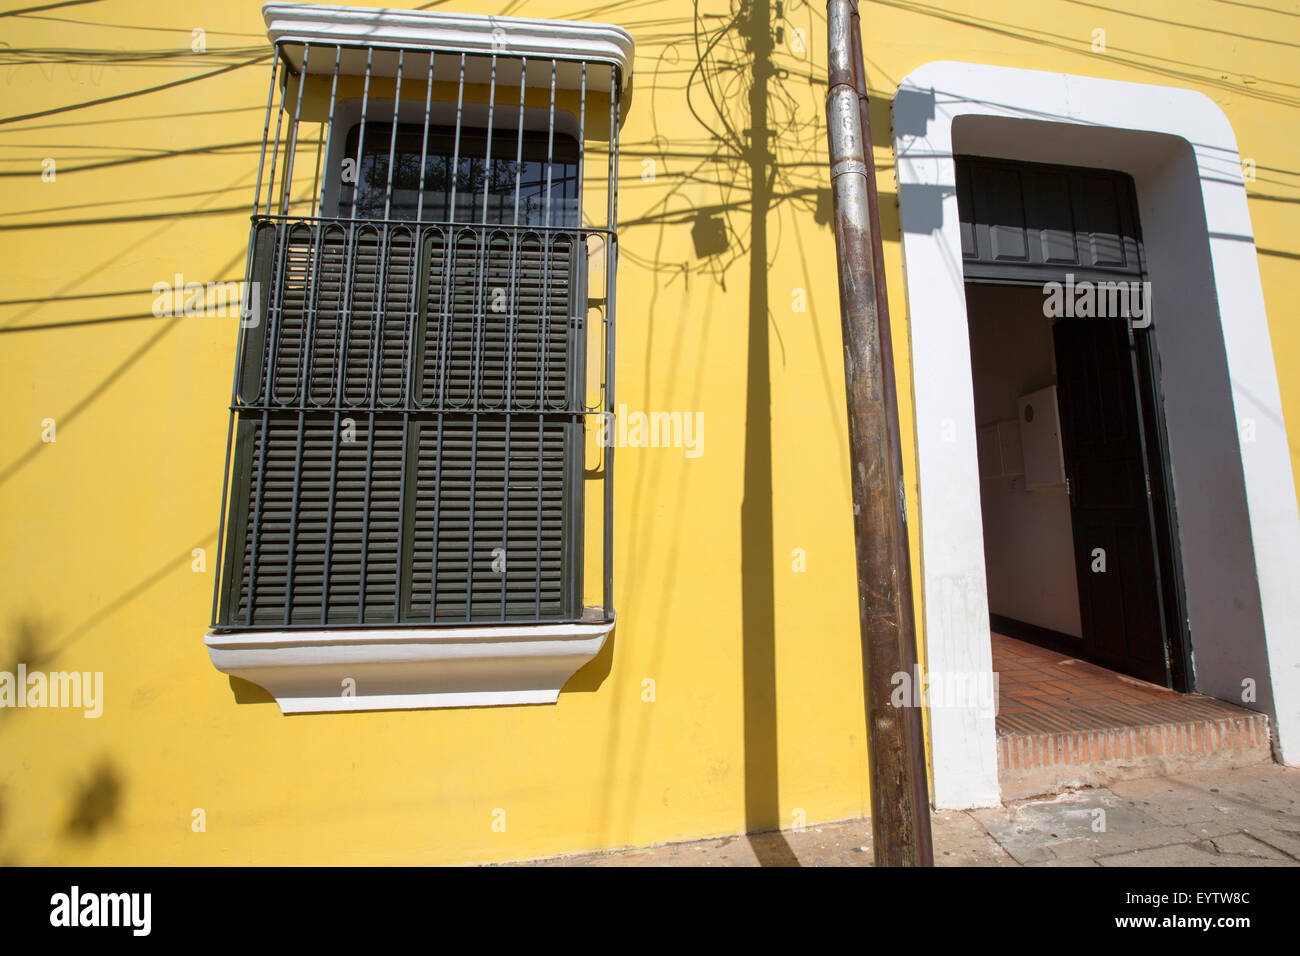 Old colonial town. Venezuela, Ciudad Bolivar is one of the prettiest colonial cities in Venezuela. - Stock Image